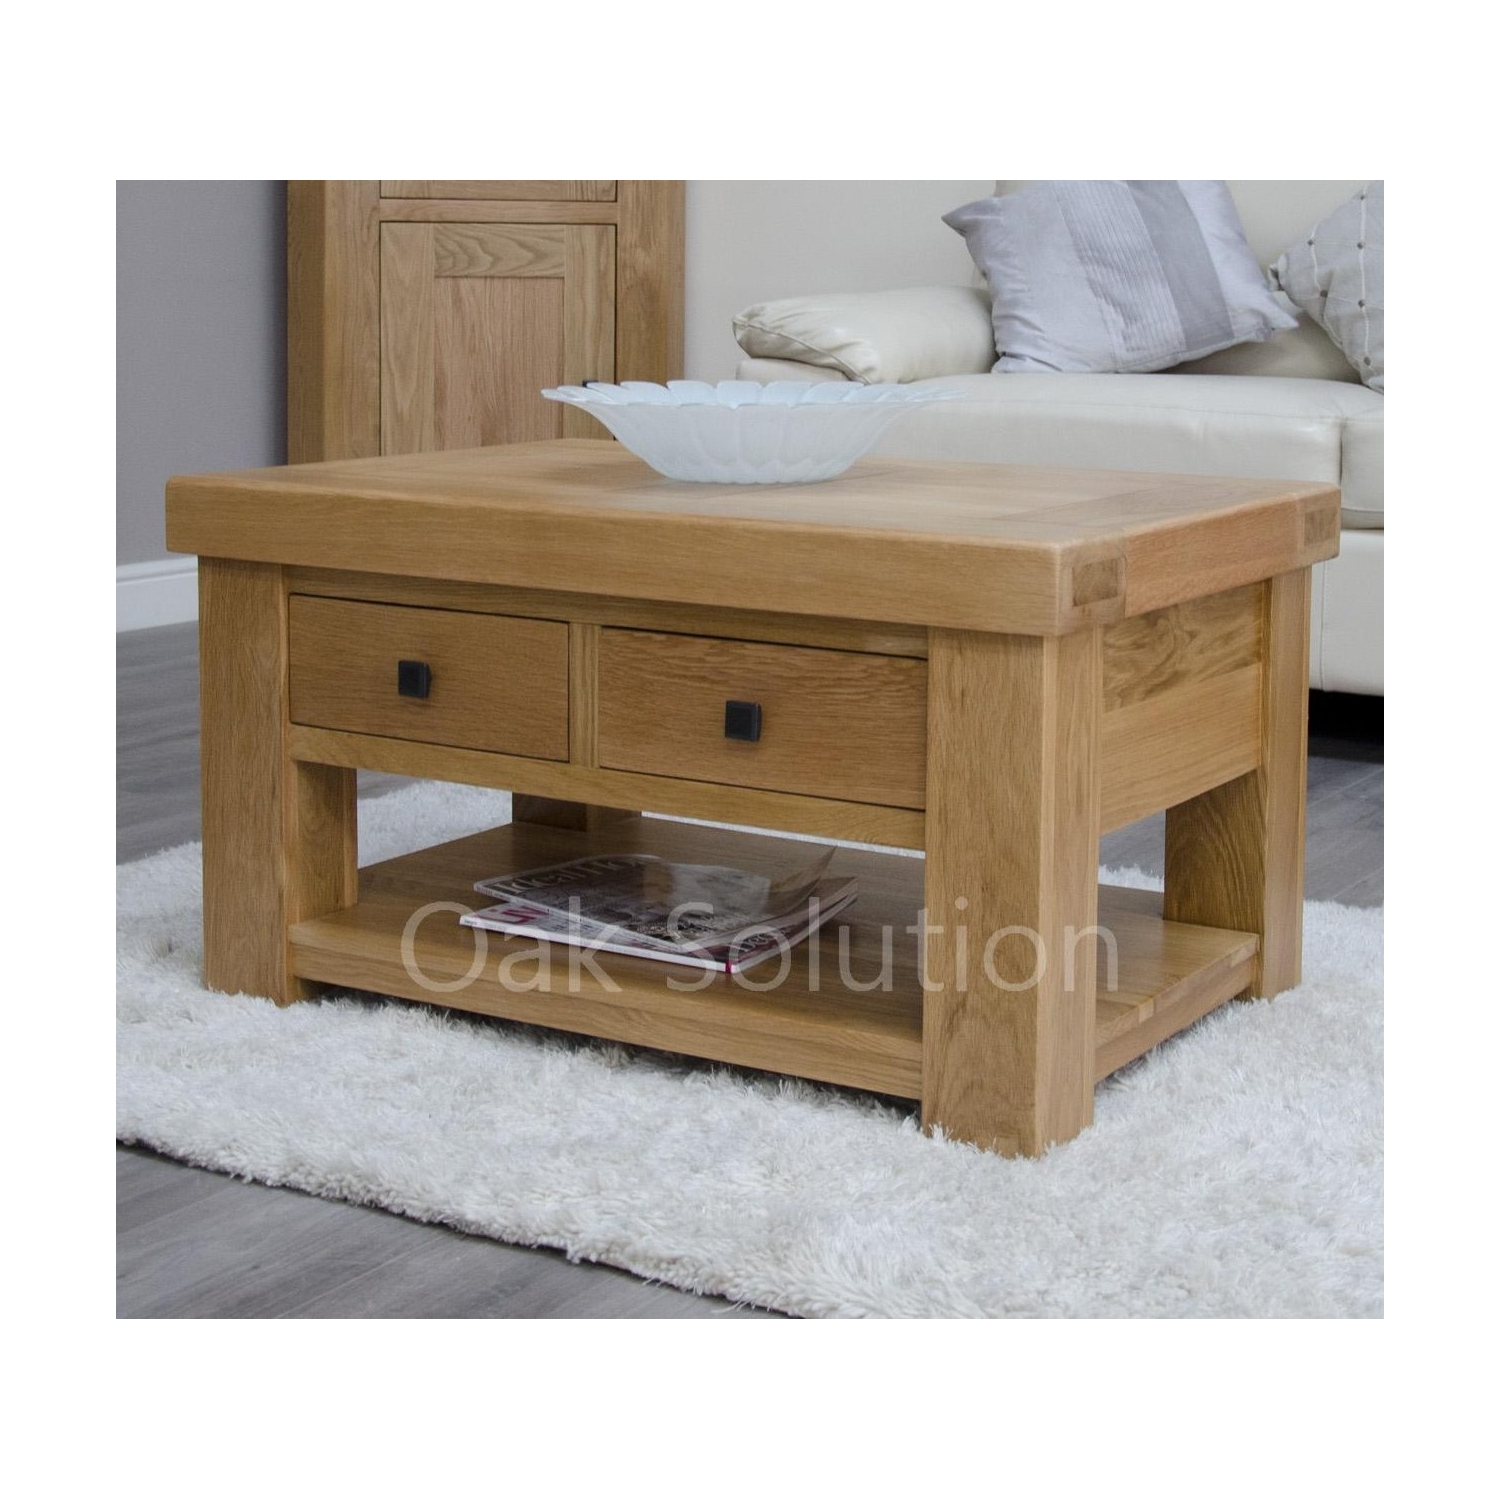 Belgrave Solid Oak Furniture Storage Coffee Table With Drawers Ebay